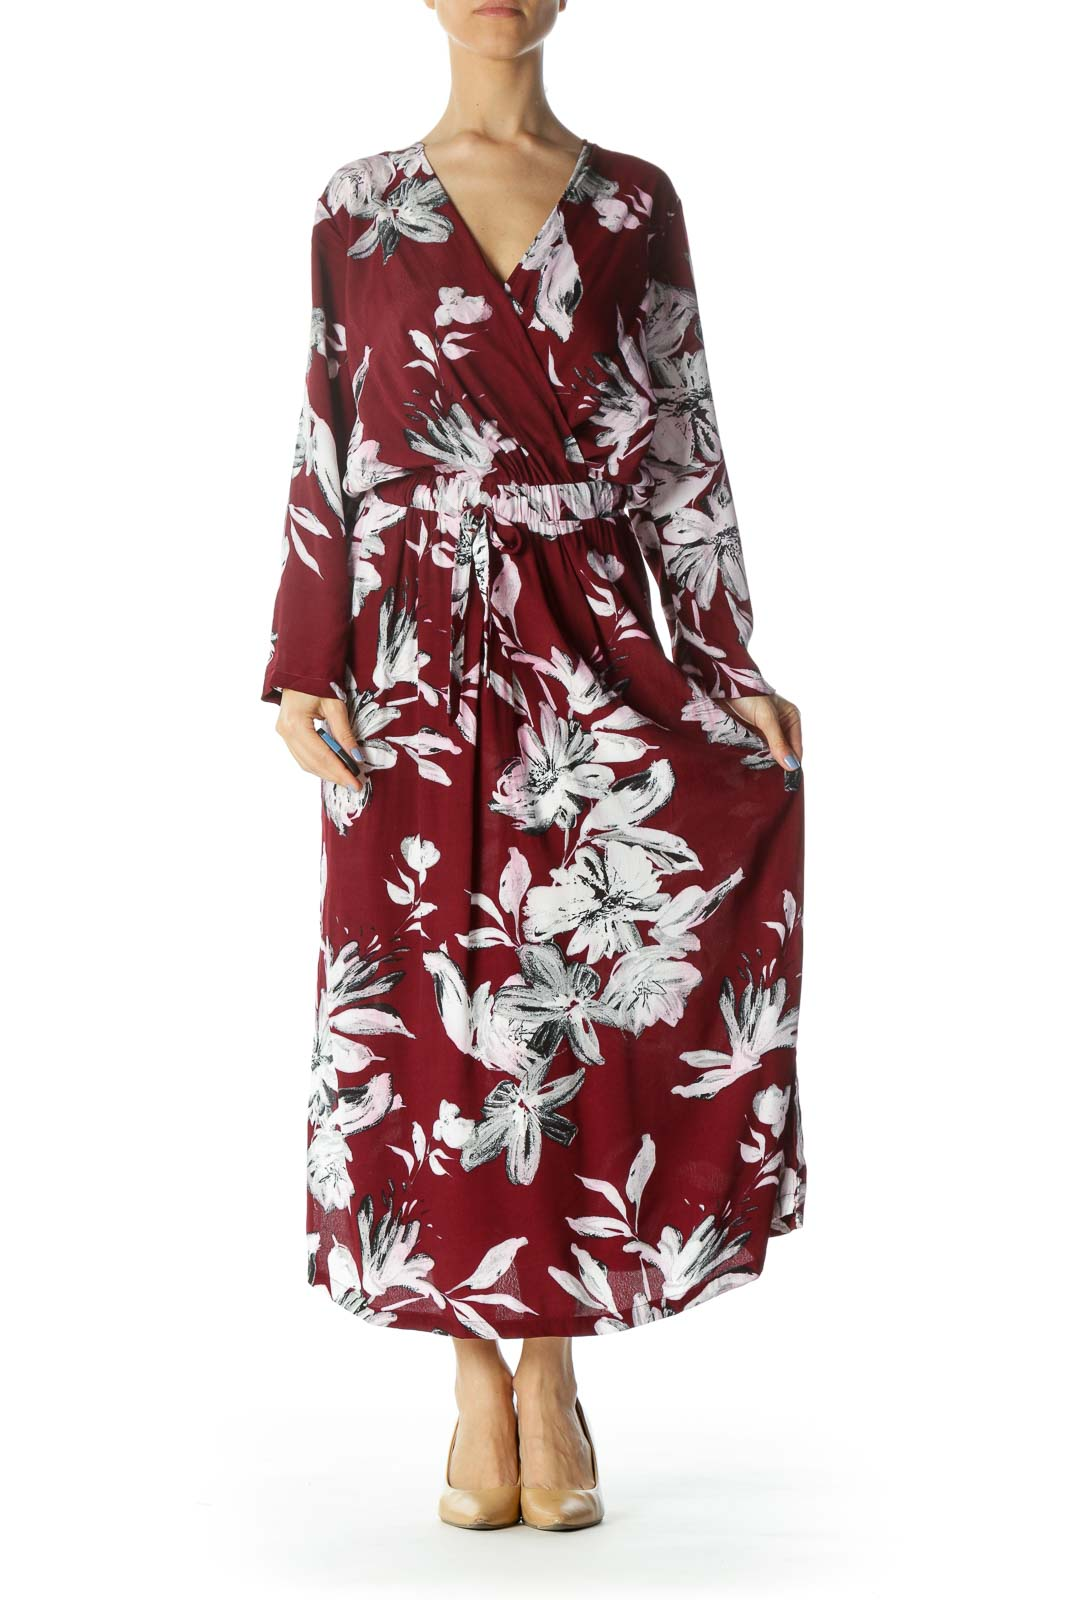 Burgundy/White/Black Flower-Print Pocketed Dress with Back String-Tie Front